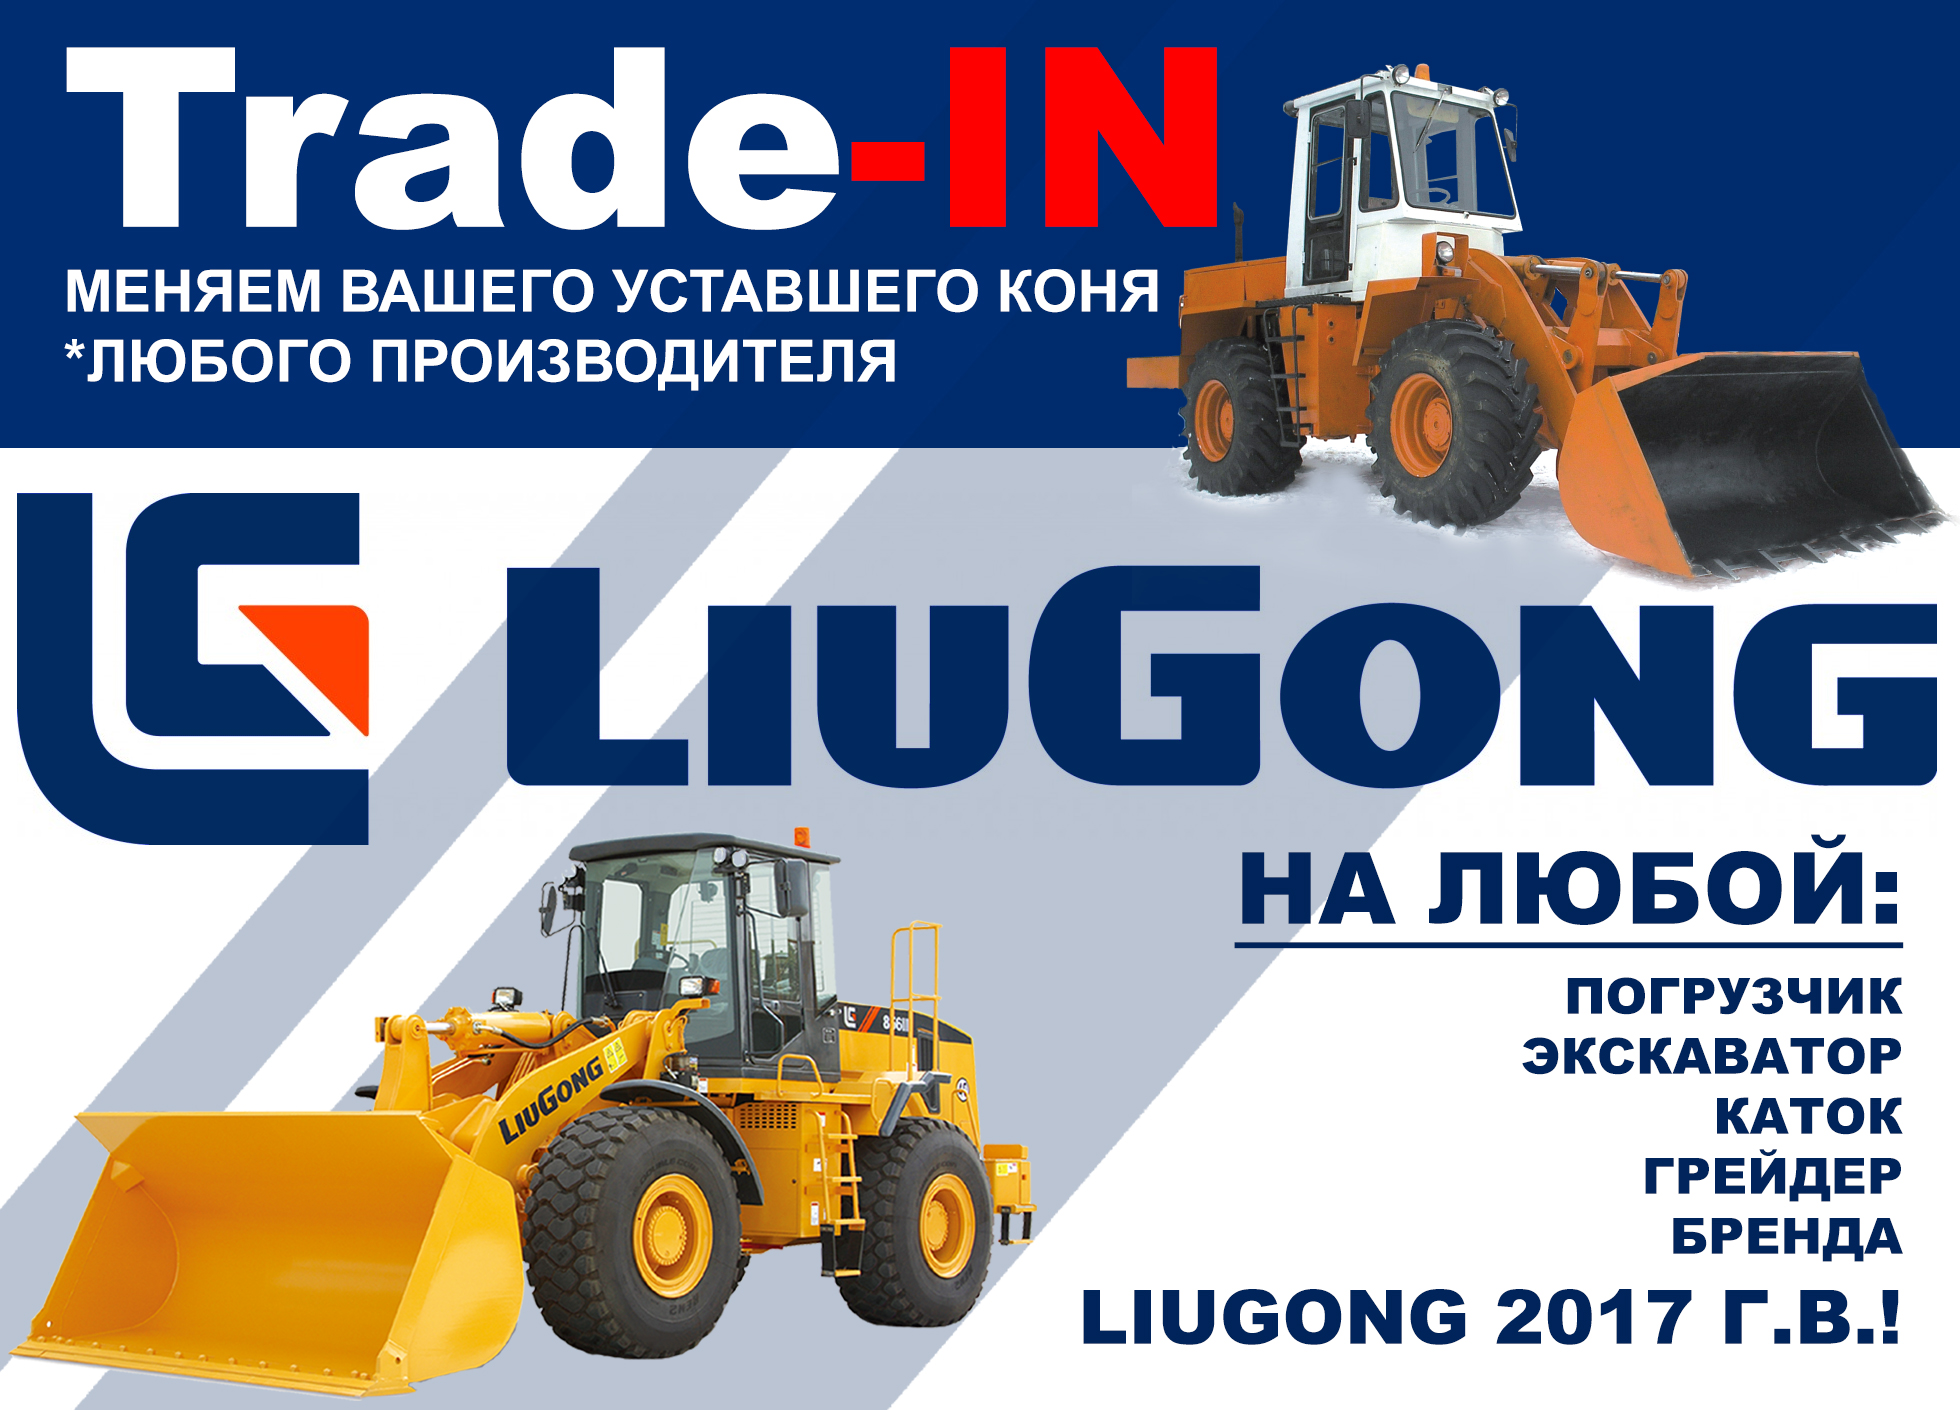 TRADE-IN-LIUGONG